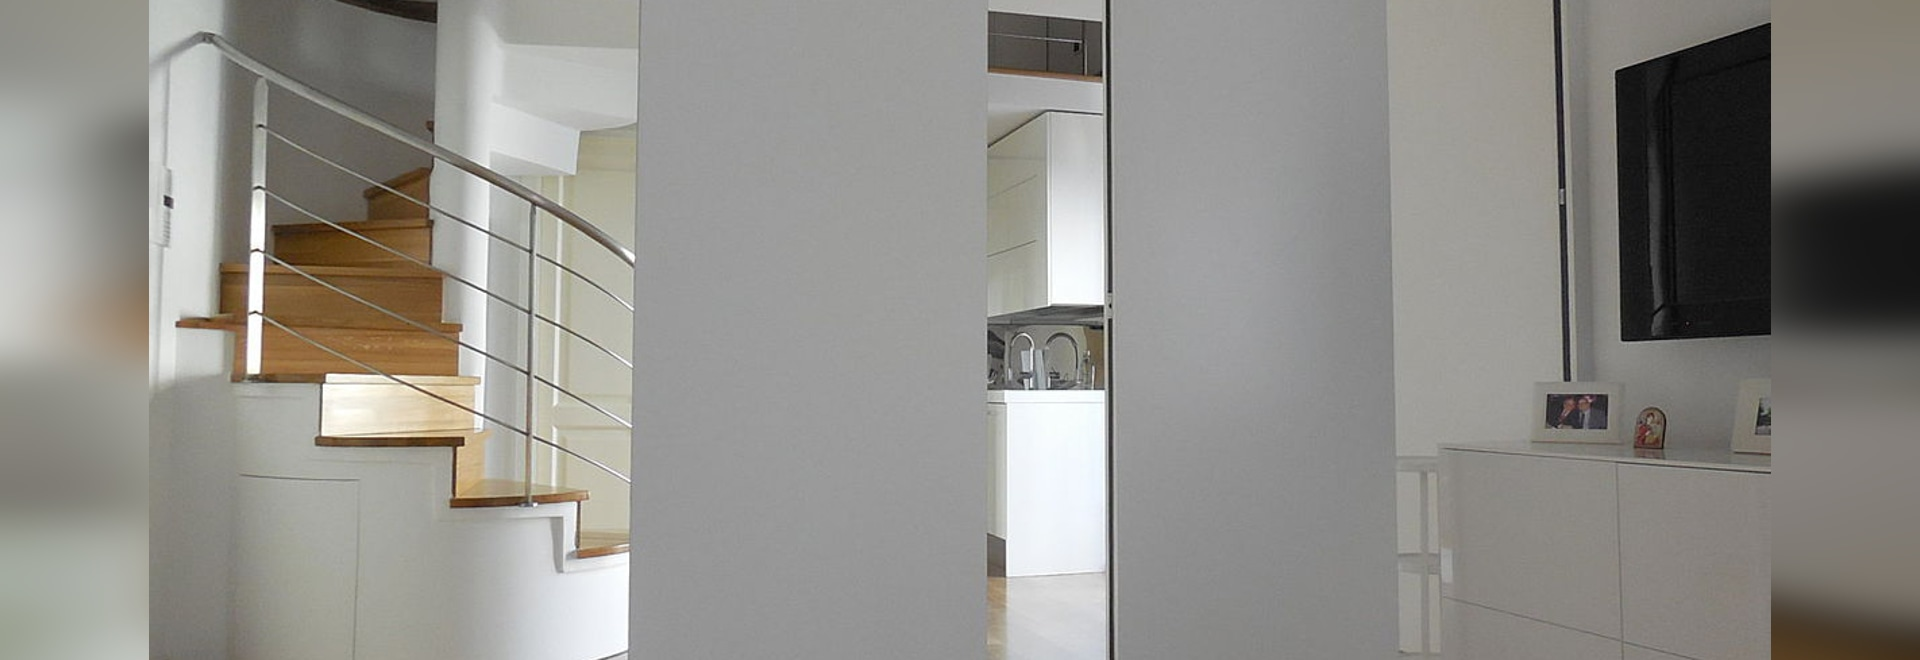 Residential movable partitions